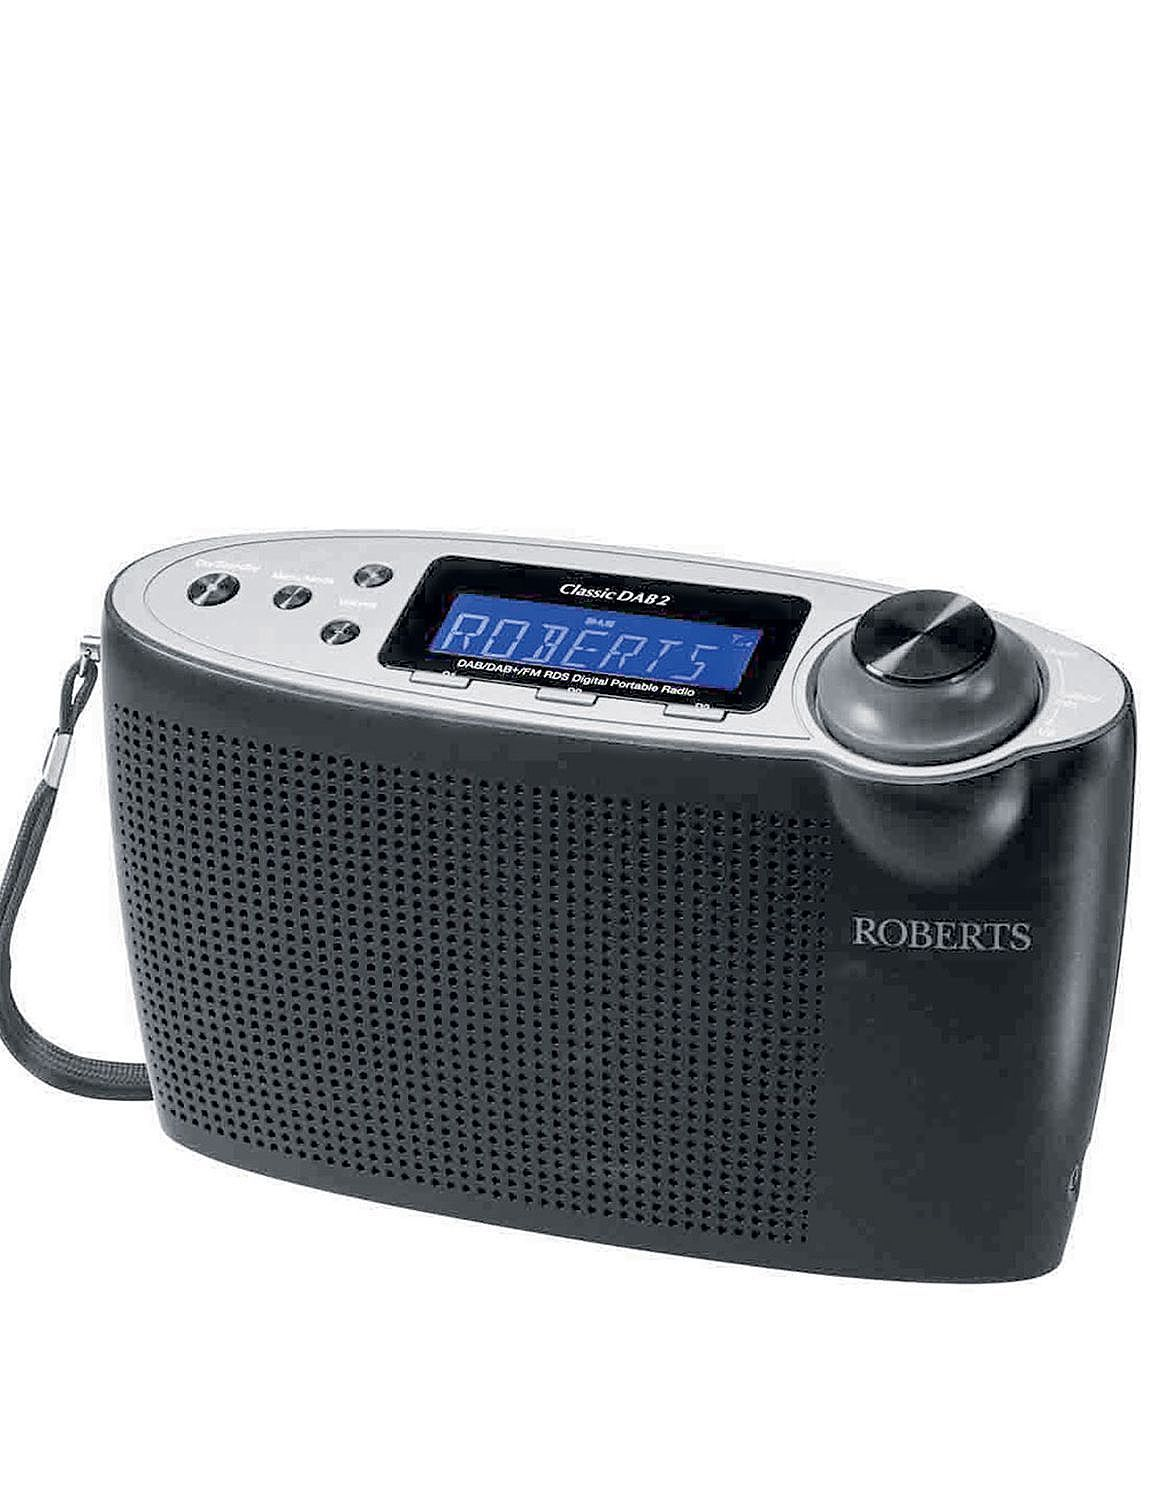 Classic dab2 roberts radio home household electricals for Classic house radio